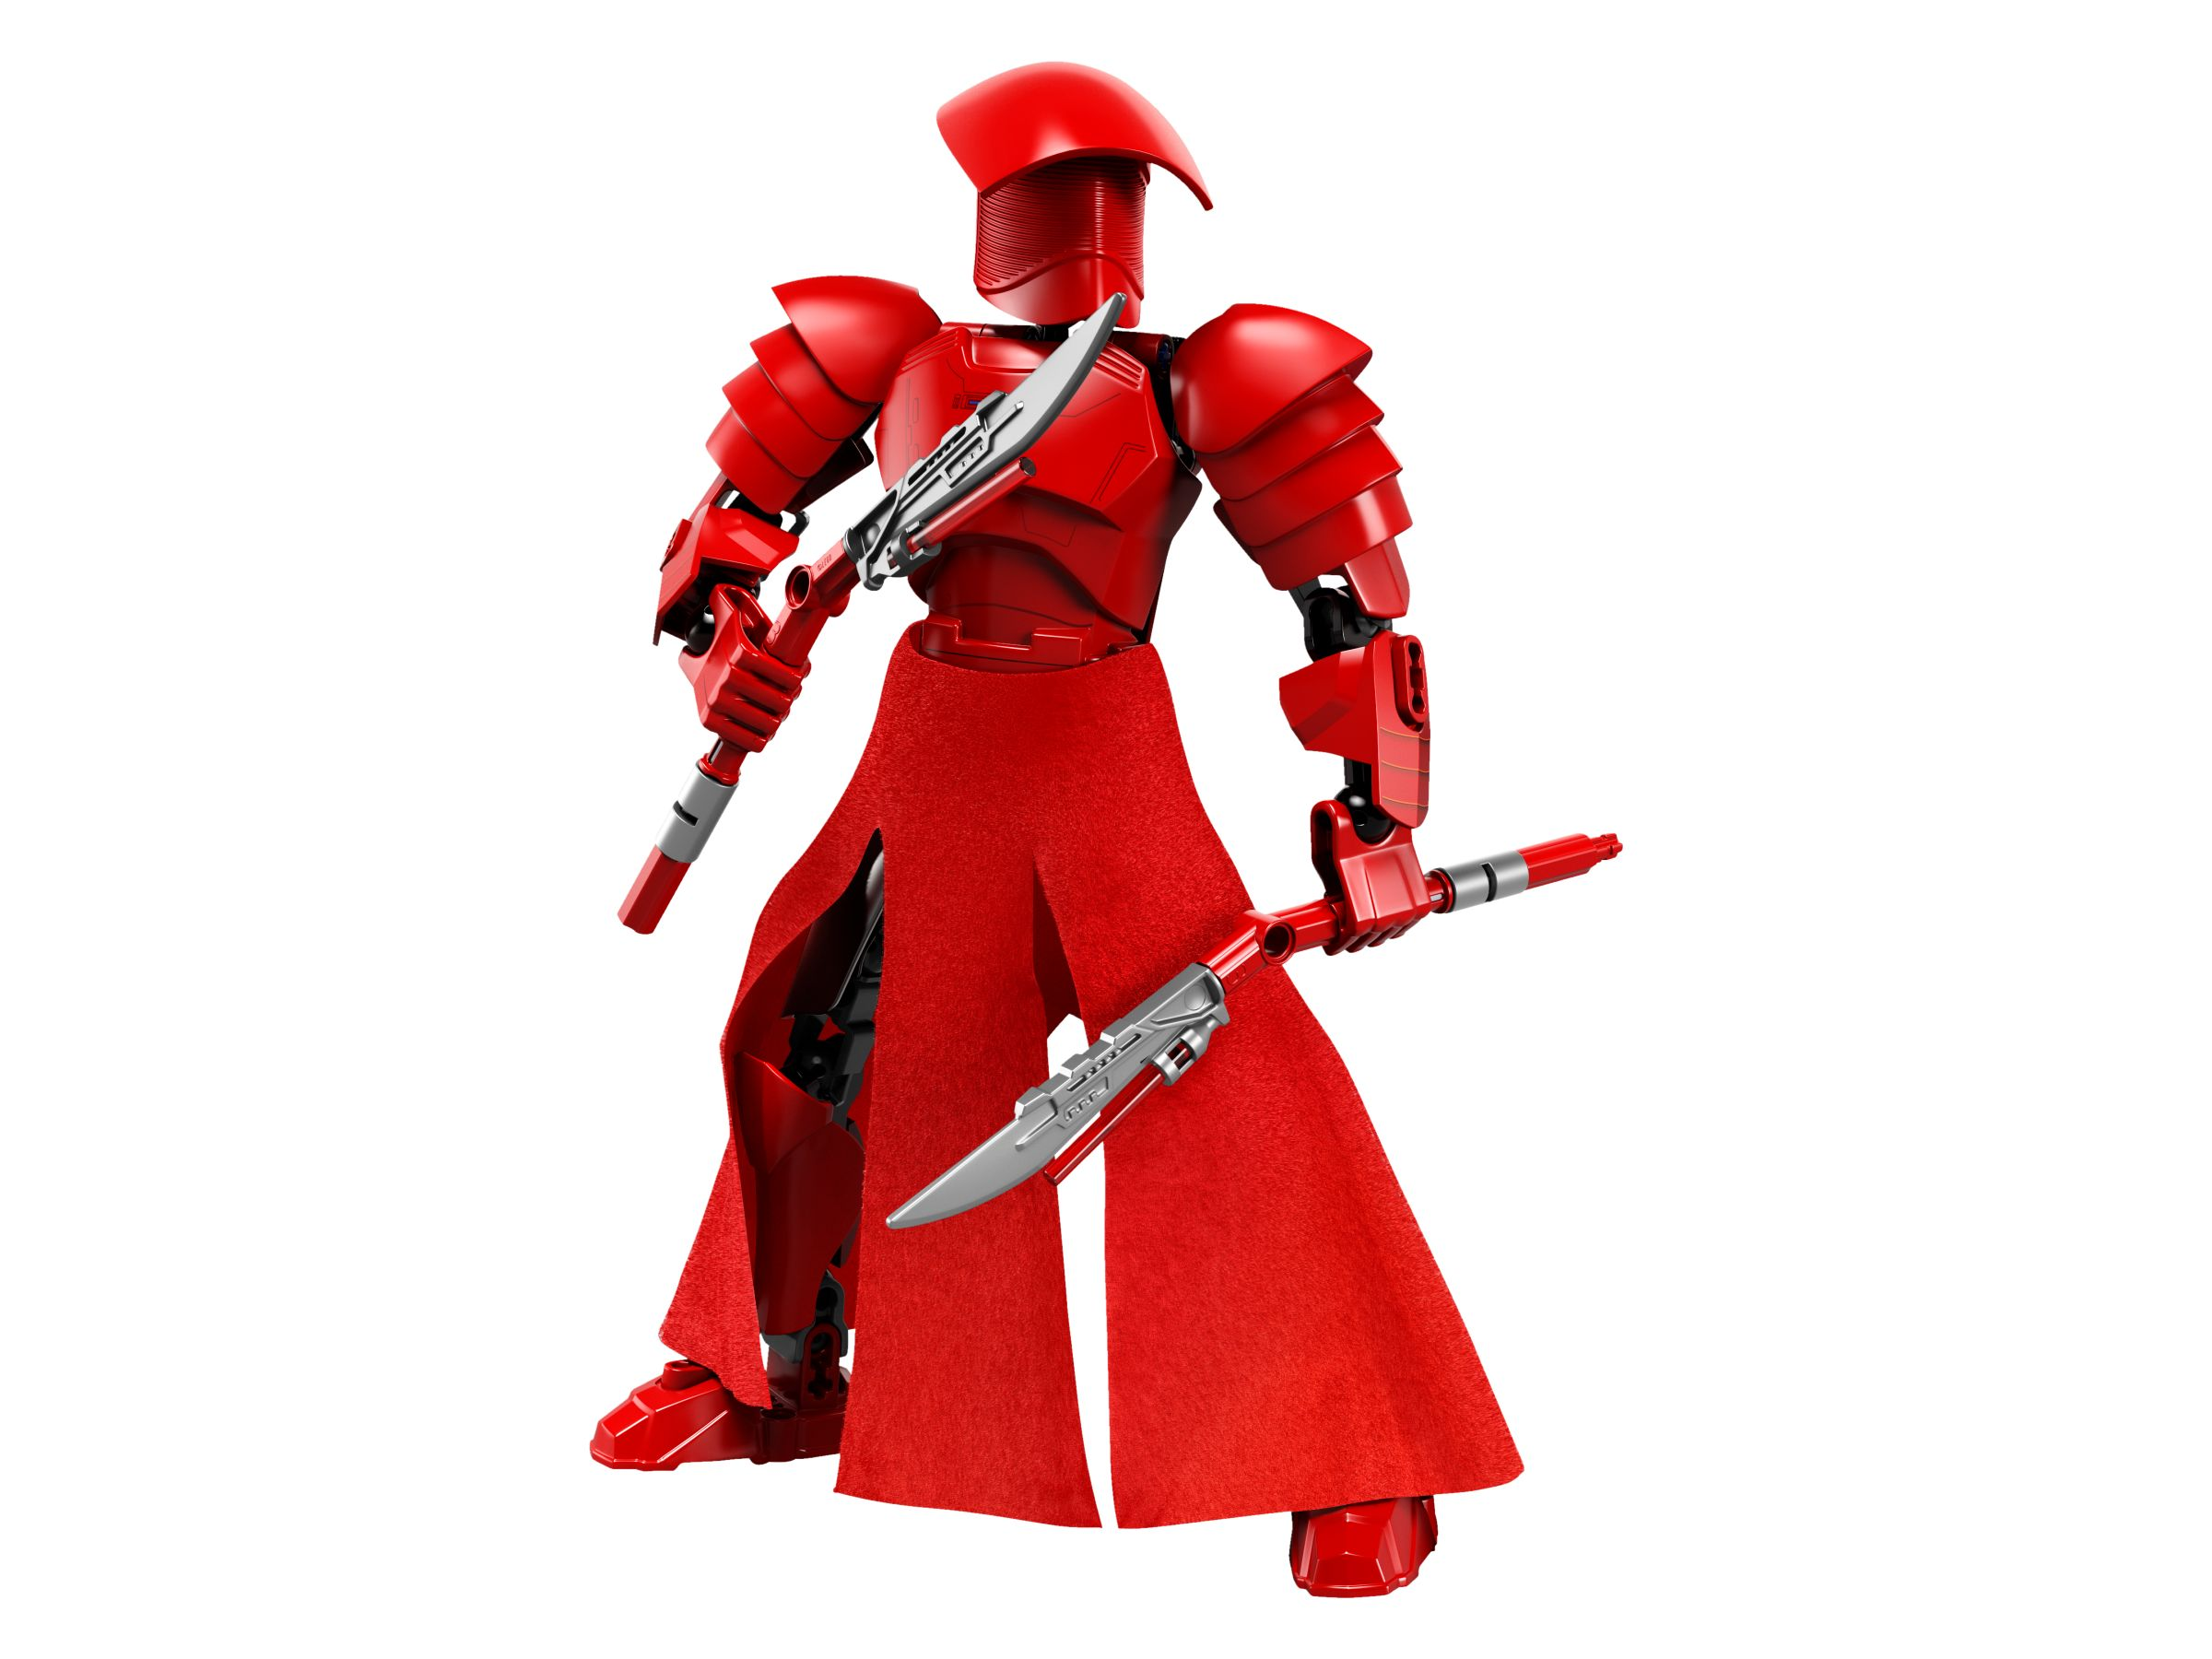 LEGO Star Wars Buildable Figures 75529 Elite Praetorian Guard LEGO_75529_alt2.jpg